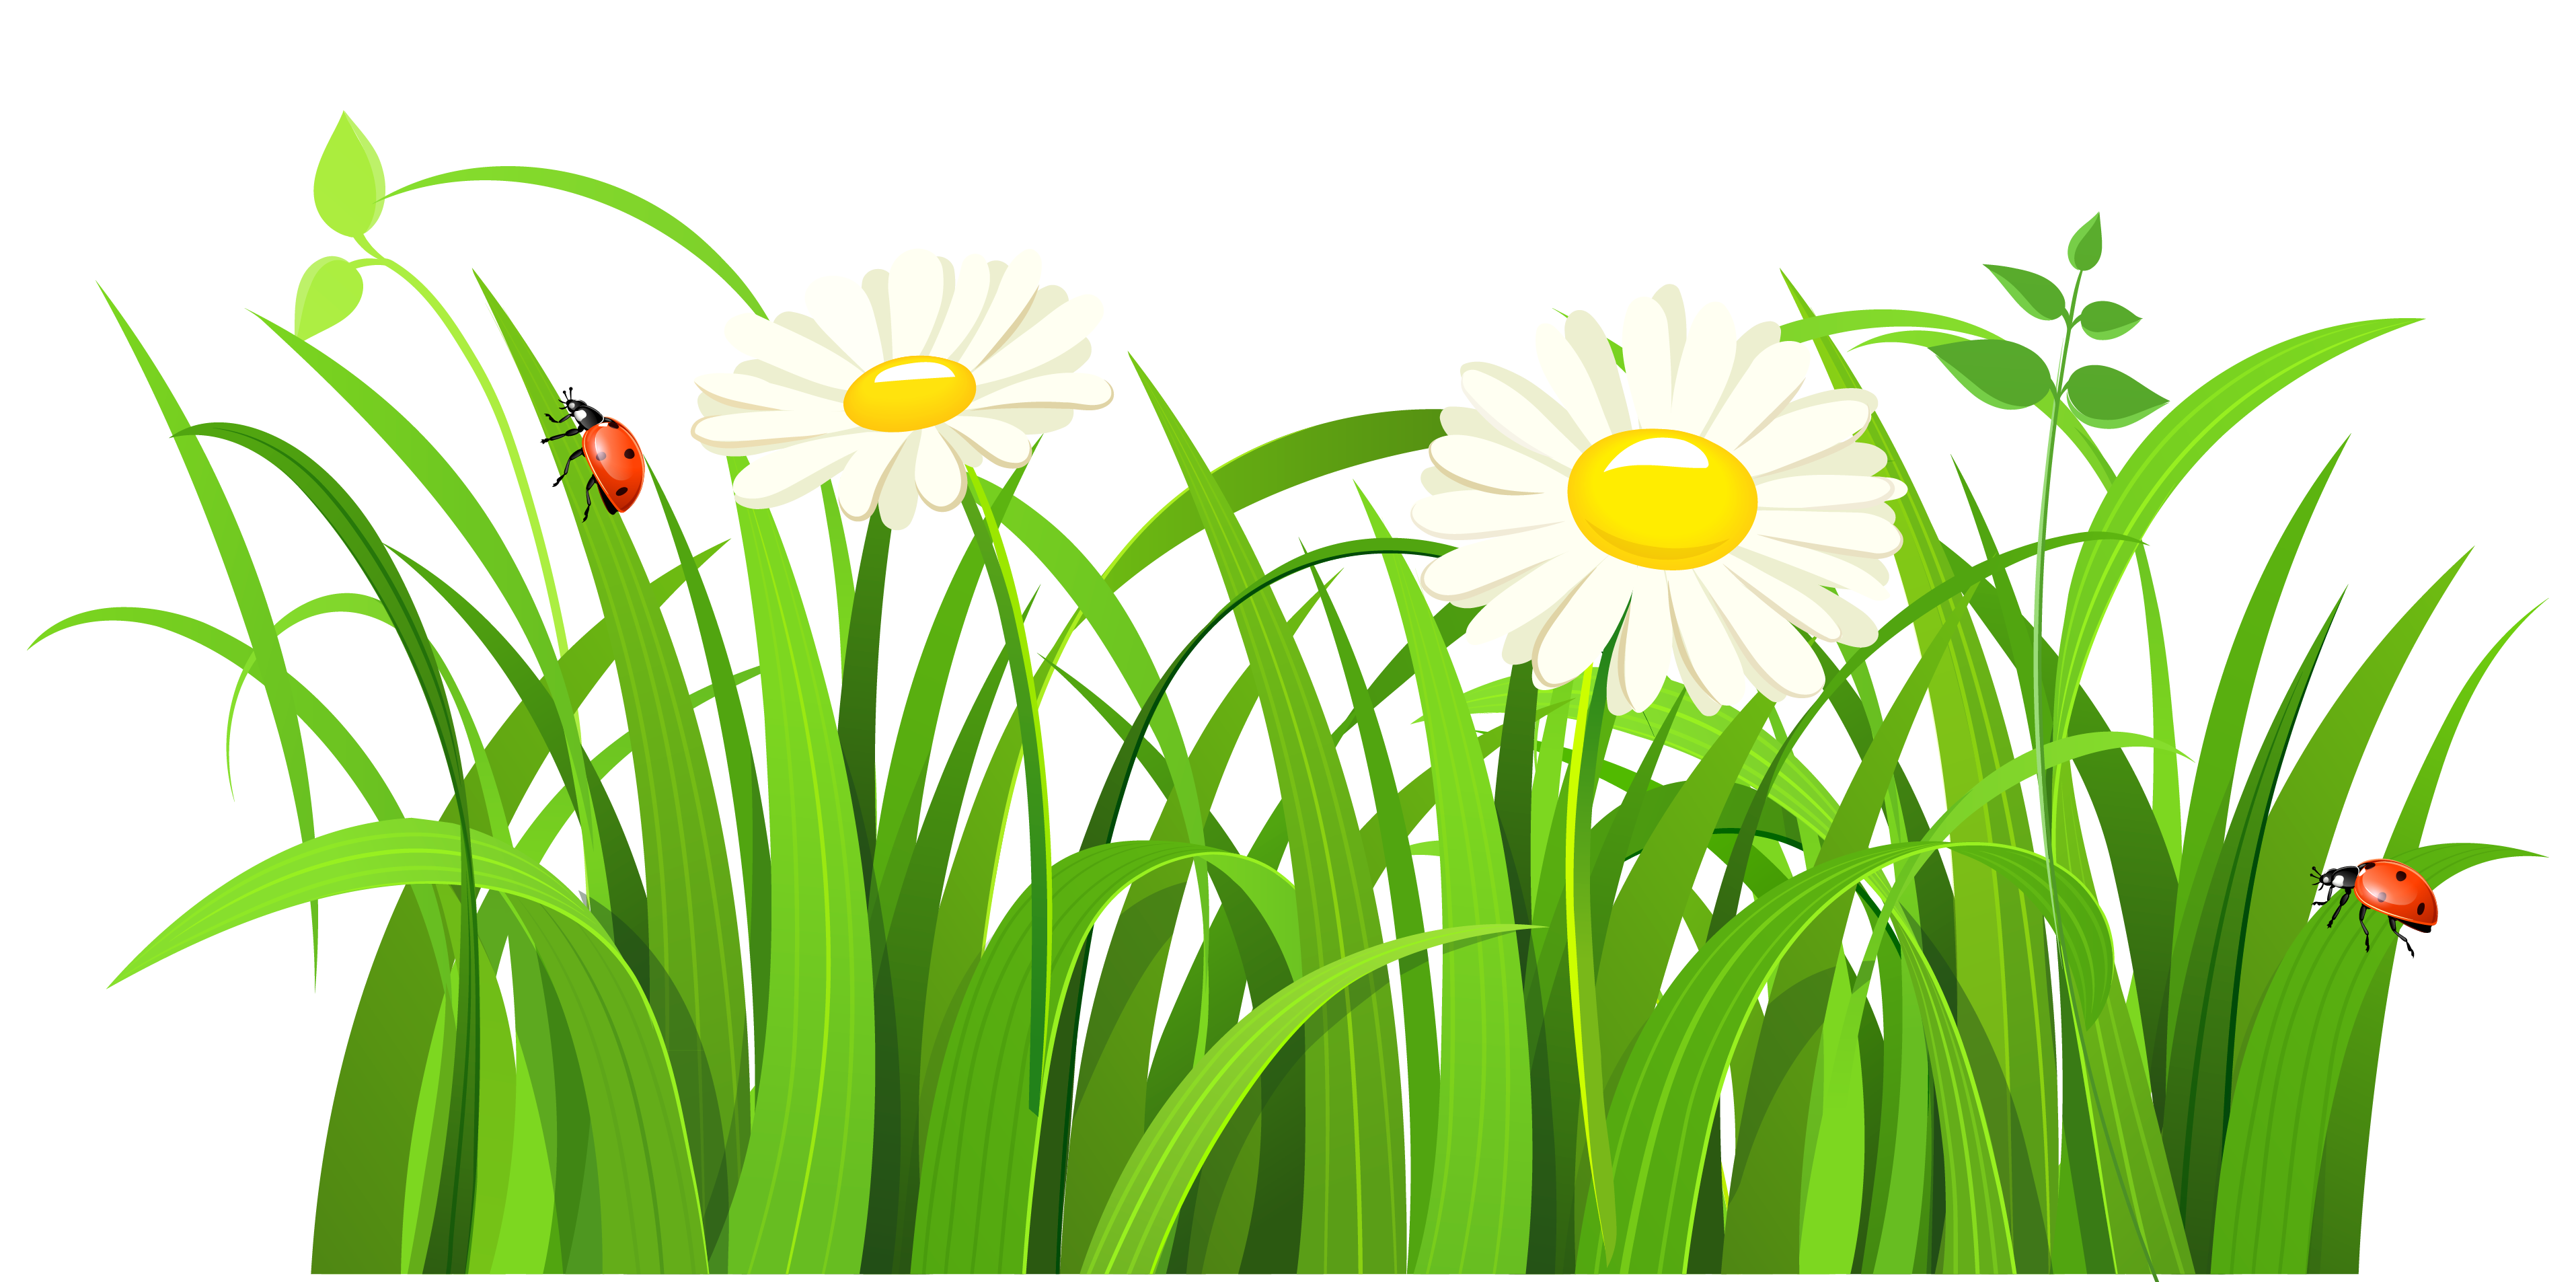 Clipart flower insect. Grass with daisies and